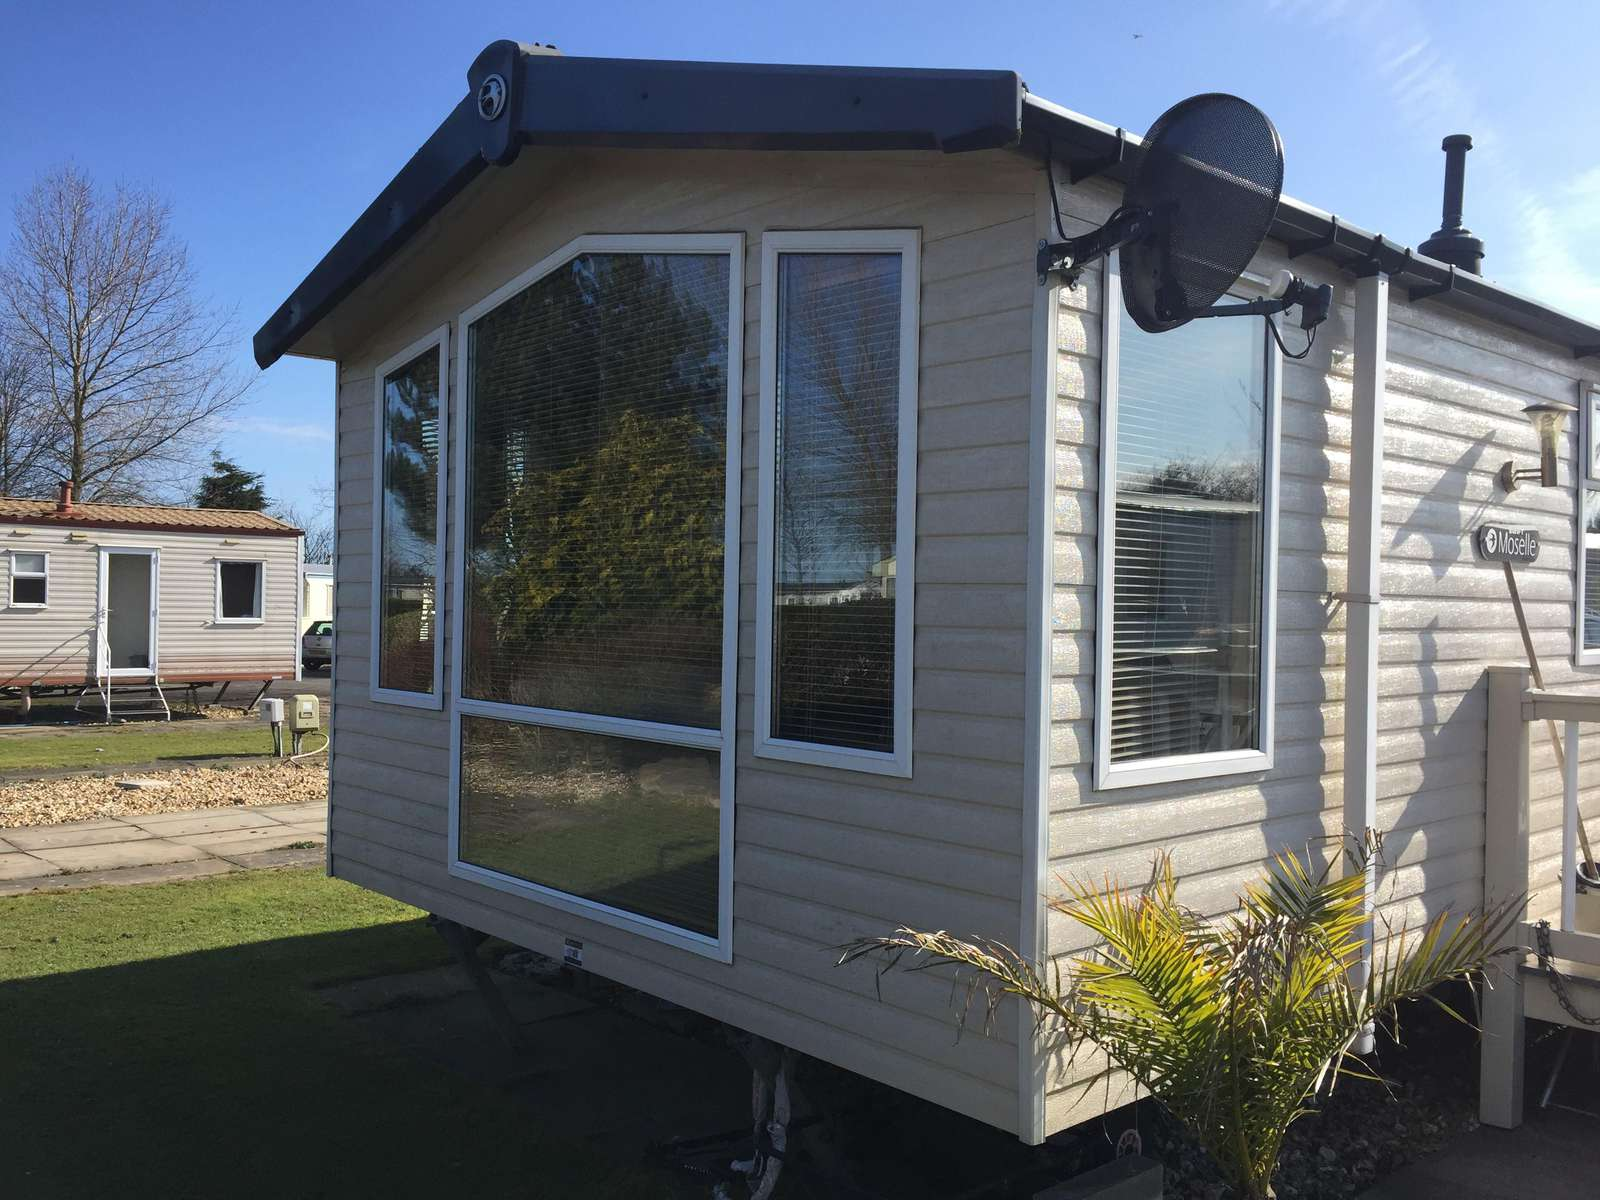 Beautiful accommodation inside and out!